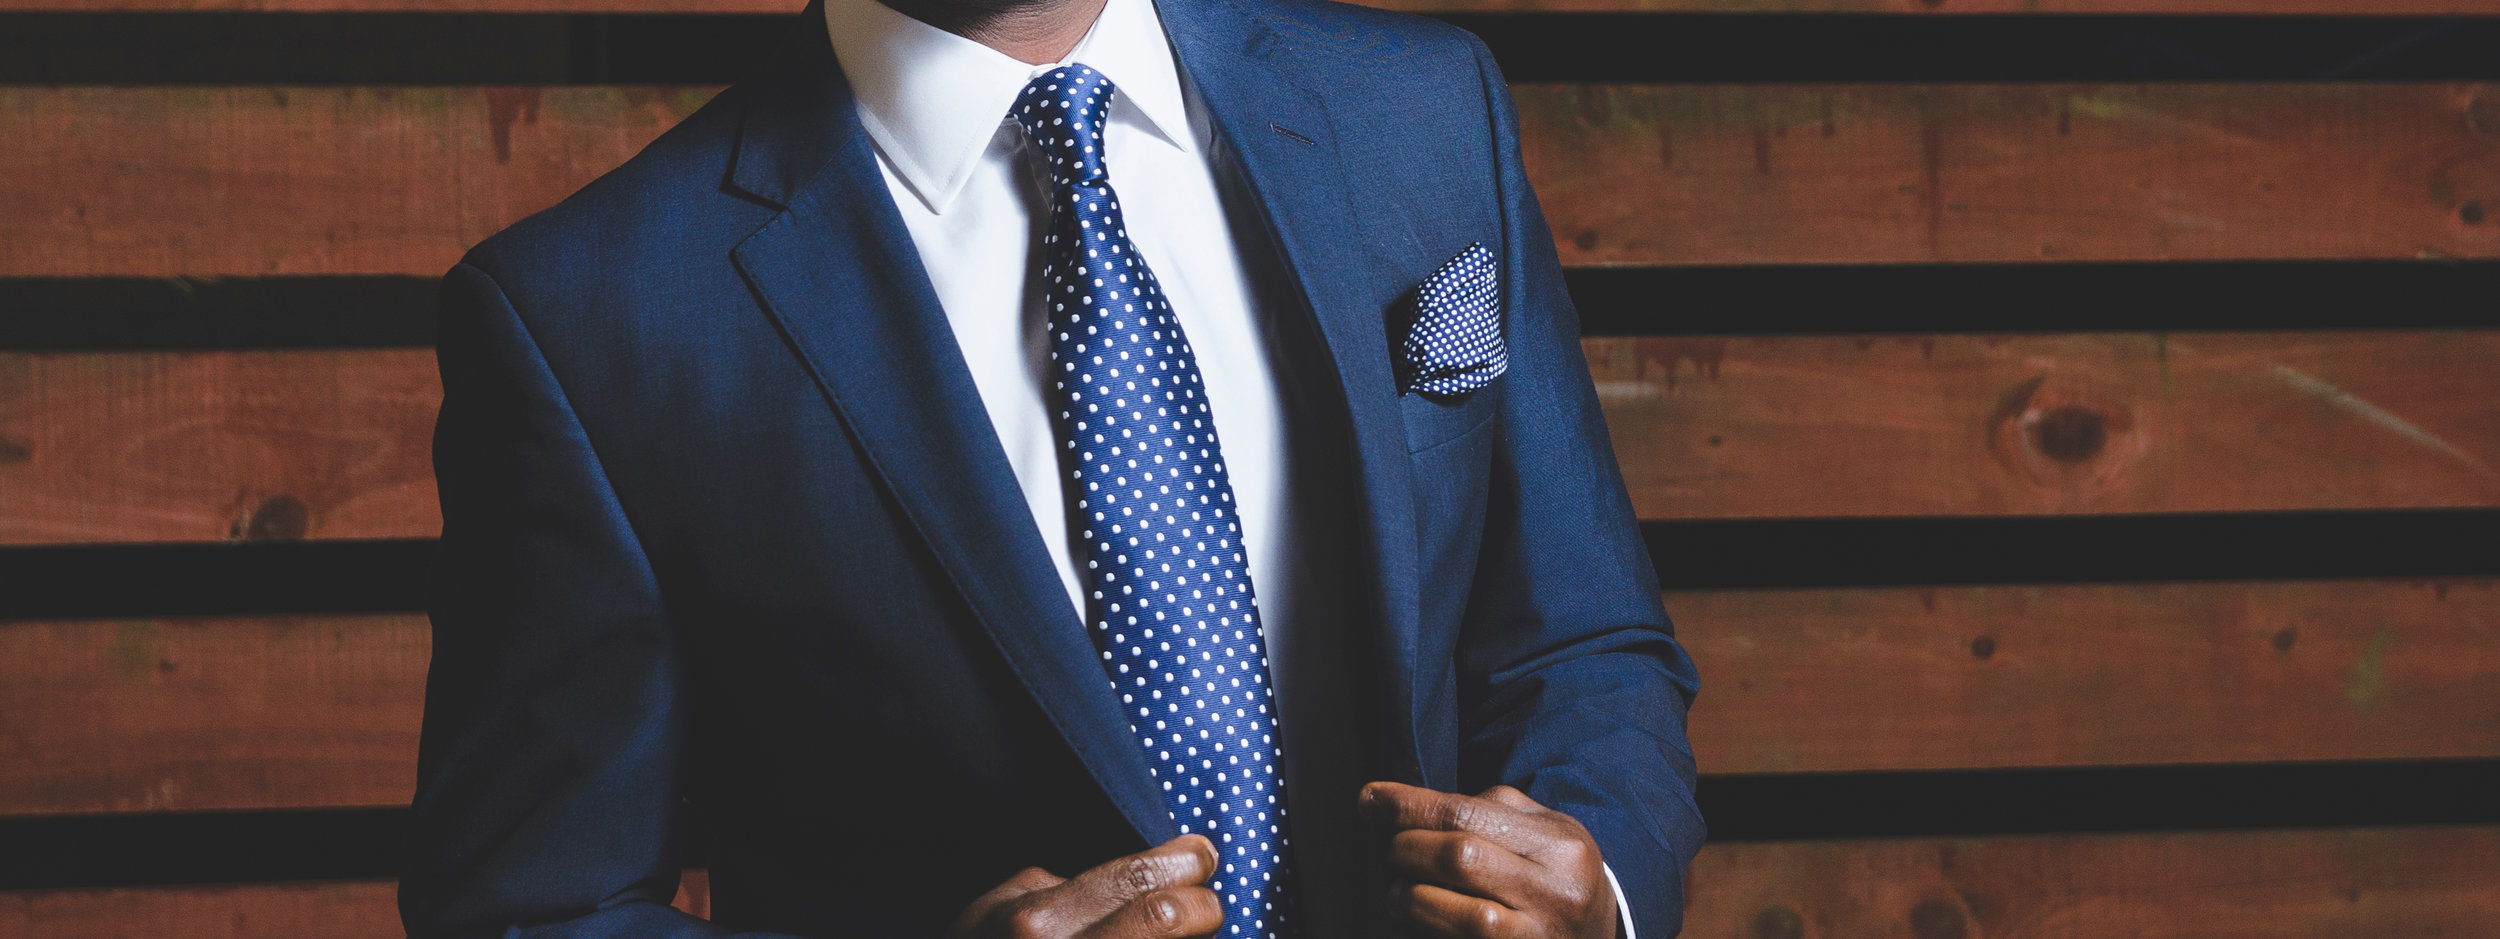 No one wore a suit at Shopify… Even a tie was questionable